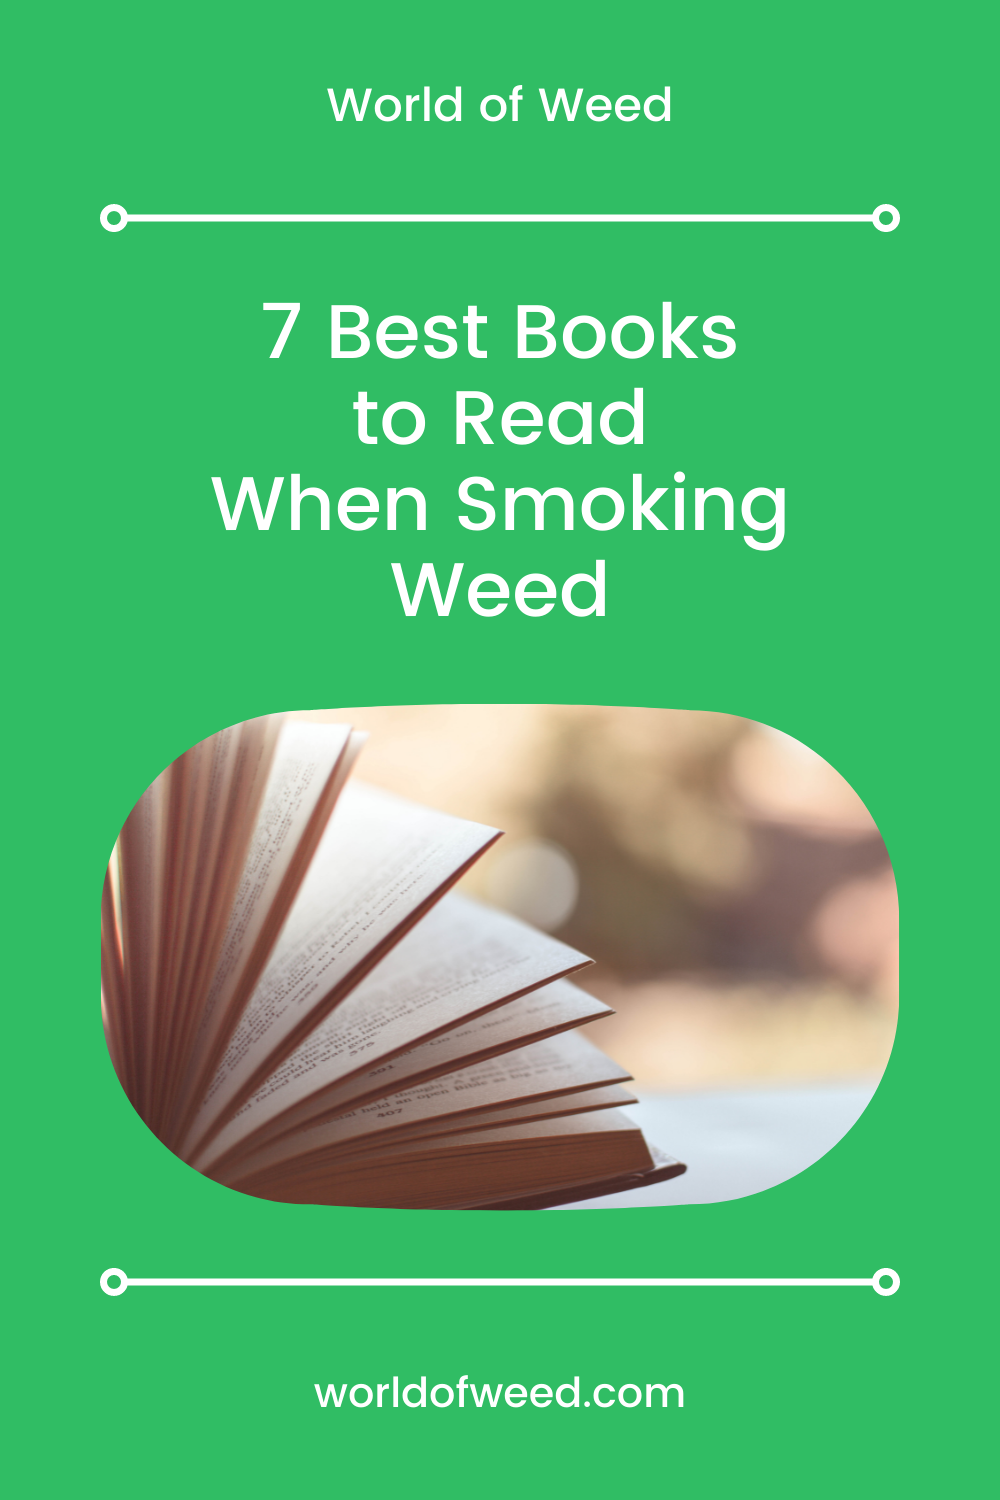 7 Best Books to Read When Smoking Weed